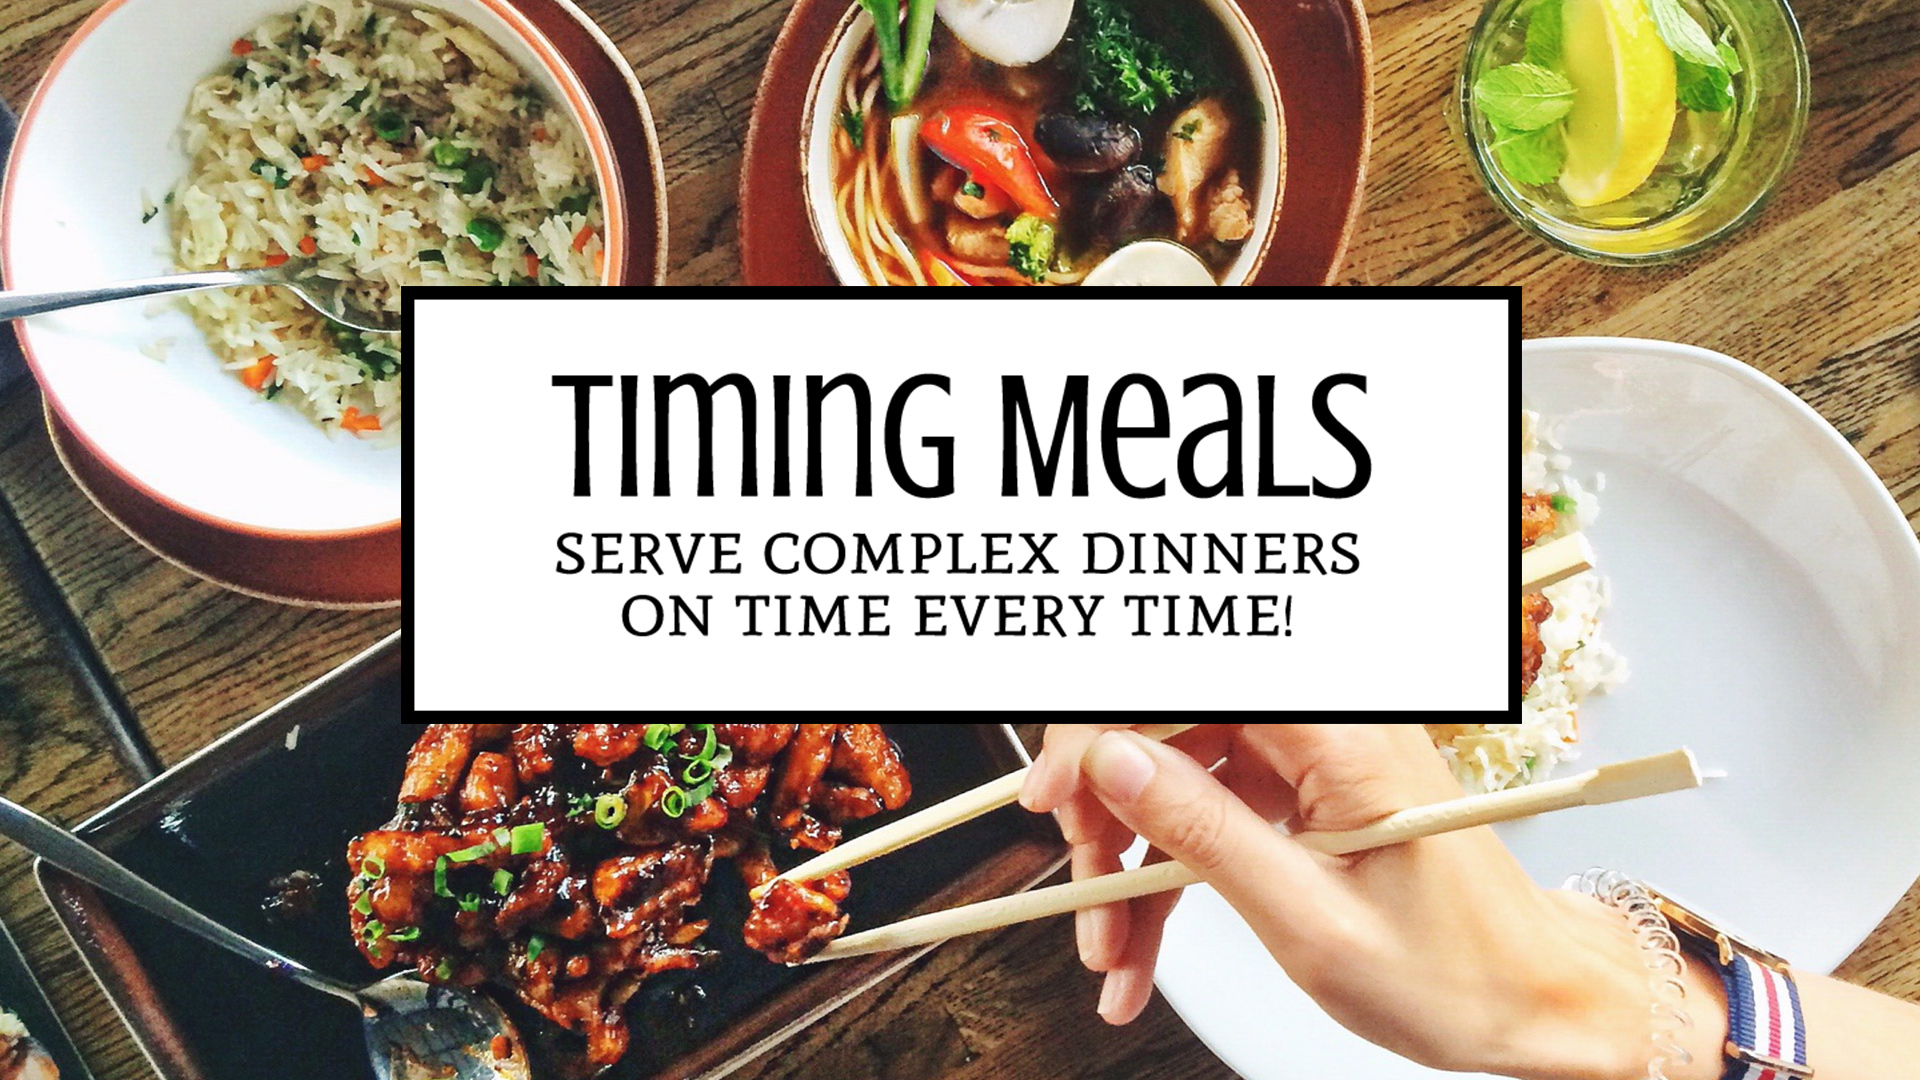 How to Time Cooking Large Meals in your Tiny Kitchen: Tips to help you plan and execute complex homemade dinners from a small space. | Tiny Kitchen Cuisine | http://tiny.kitchen